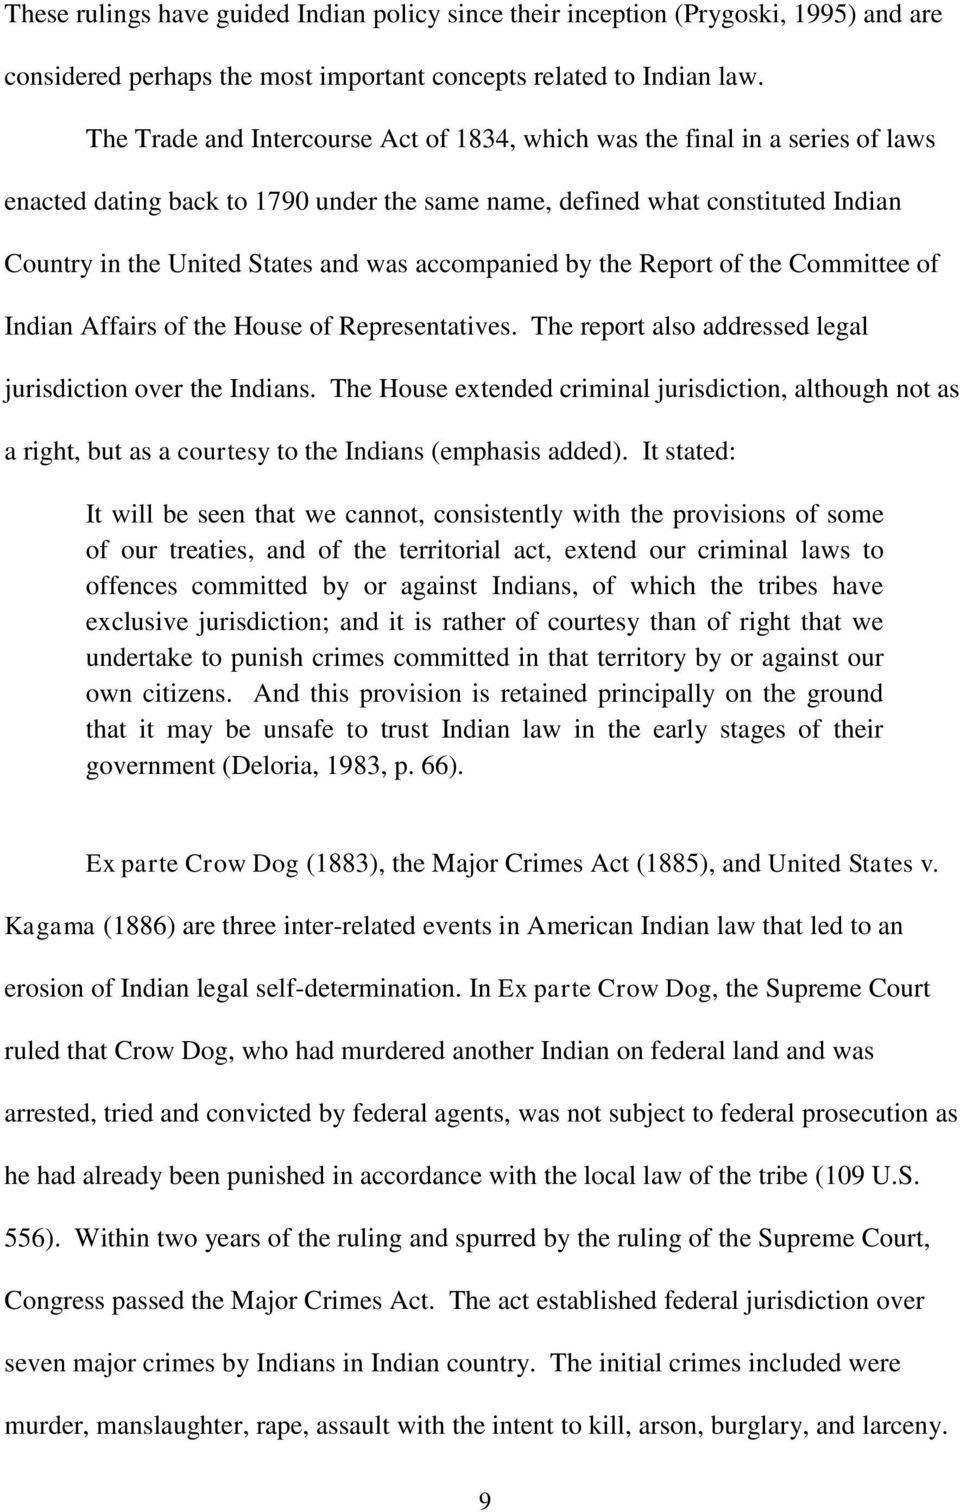 accompanied by the Report of the Committee of Indian Affairs of the House of Representatives. The report also addressed legal jurisdiction over the Indians.